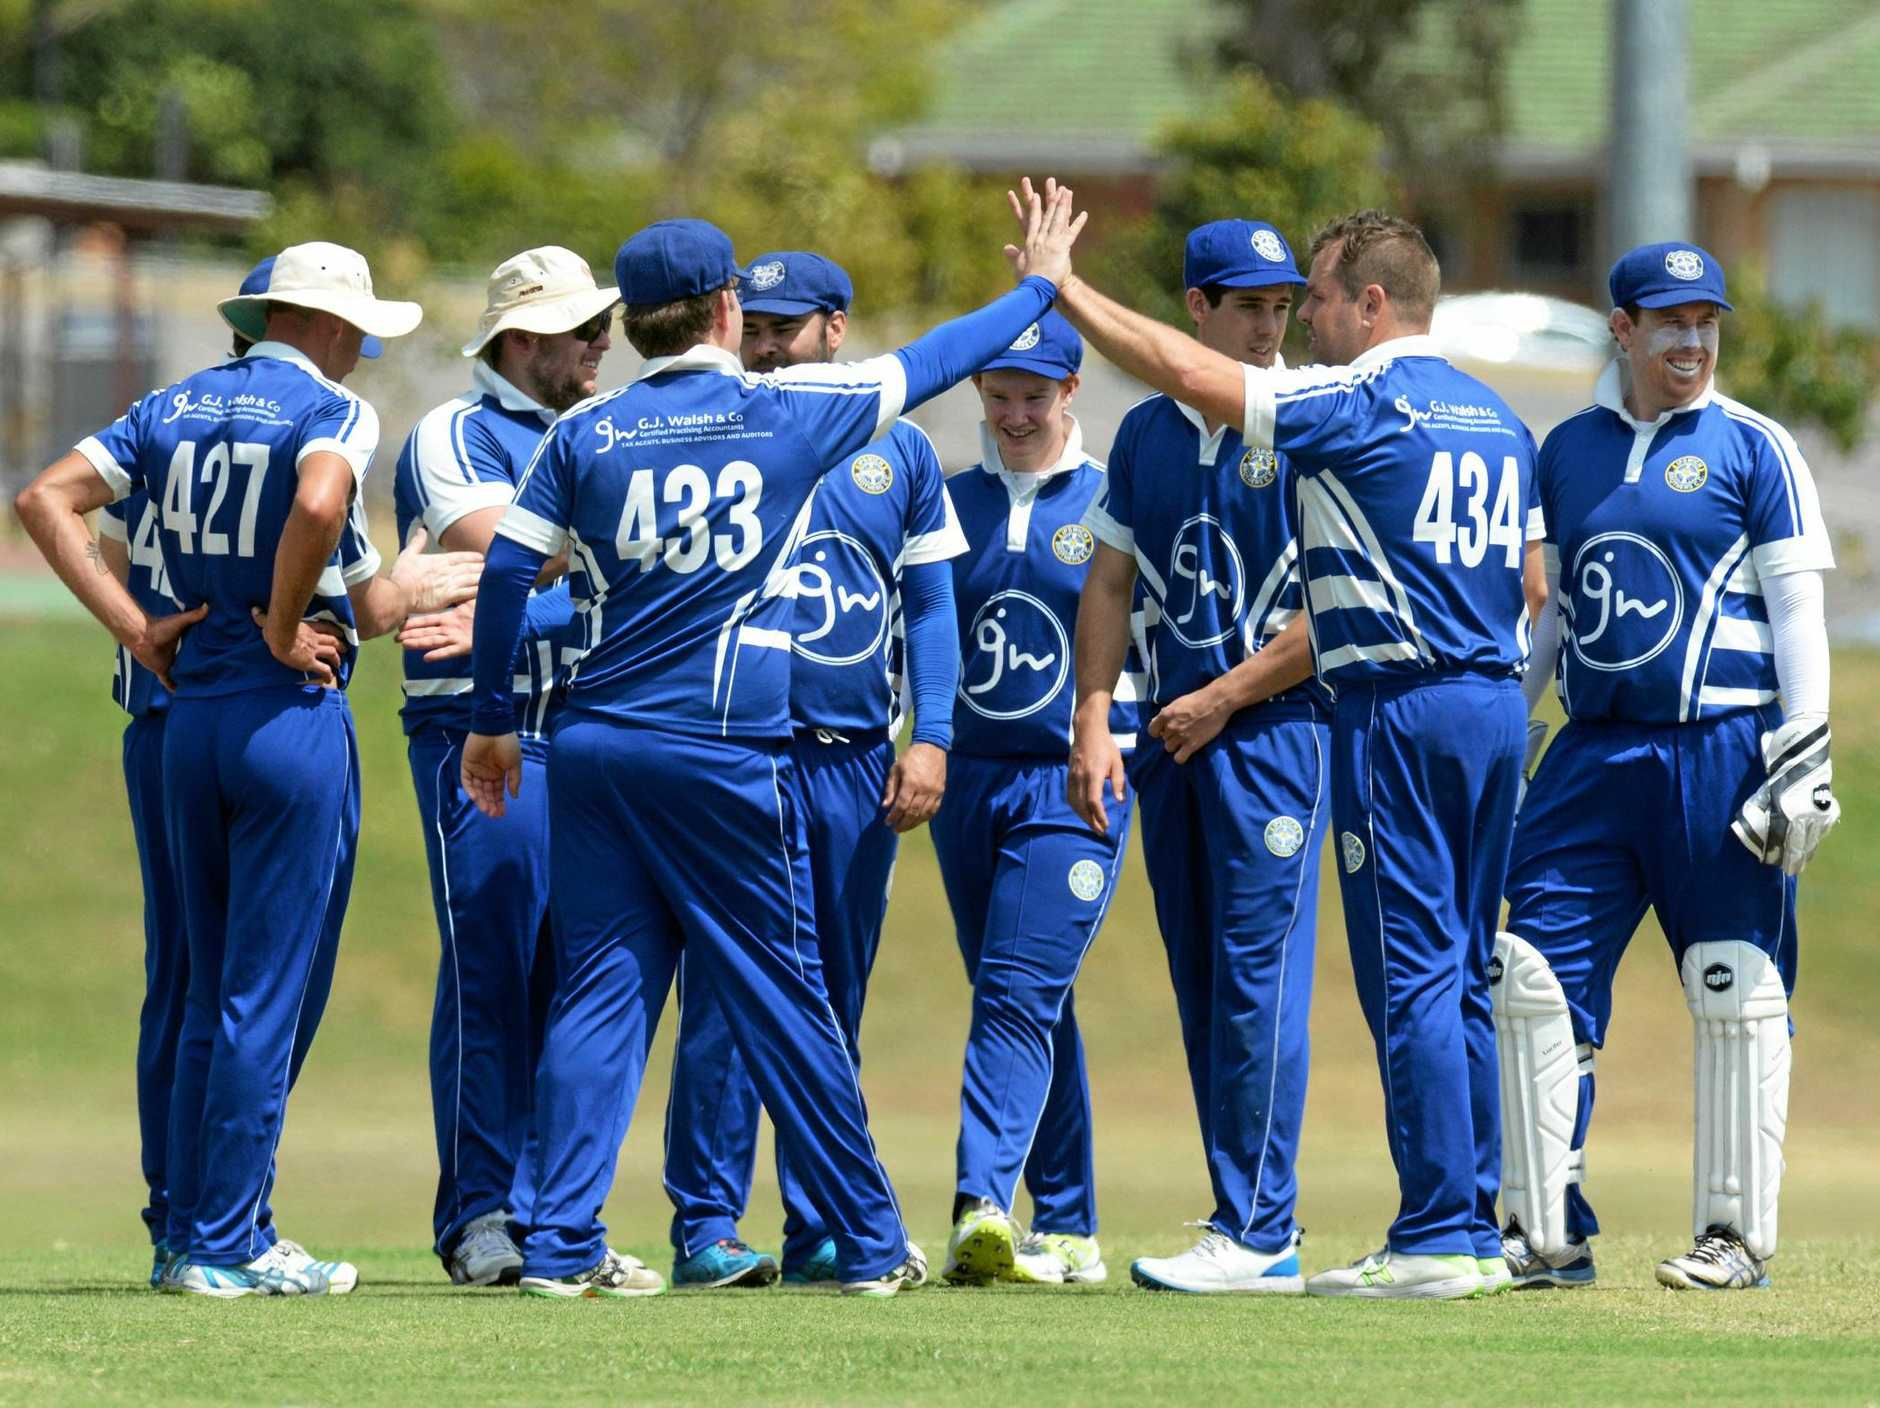 Brothers will host Western Suburbs at Ivor Marsden today.